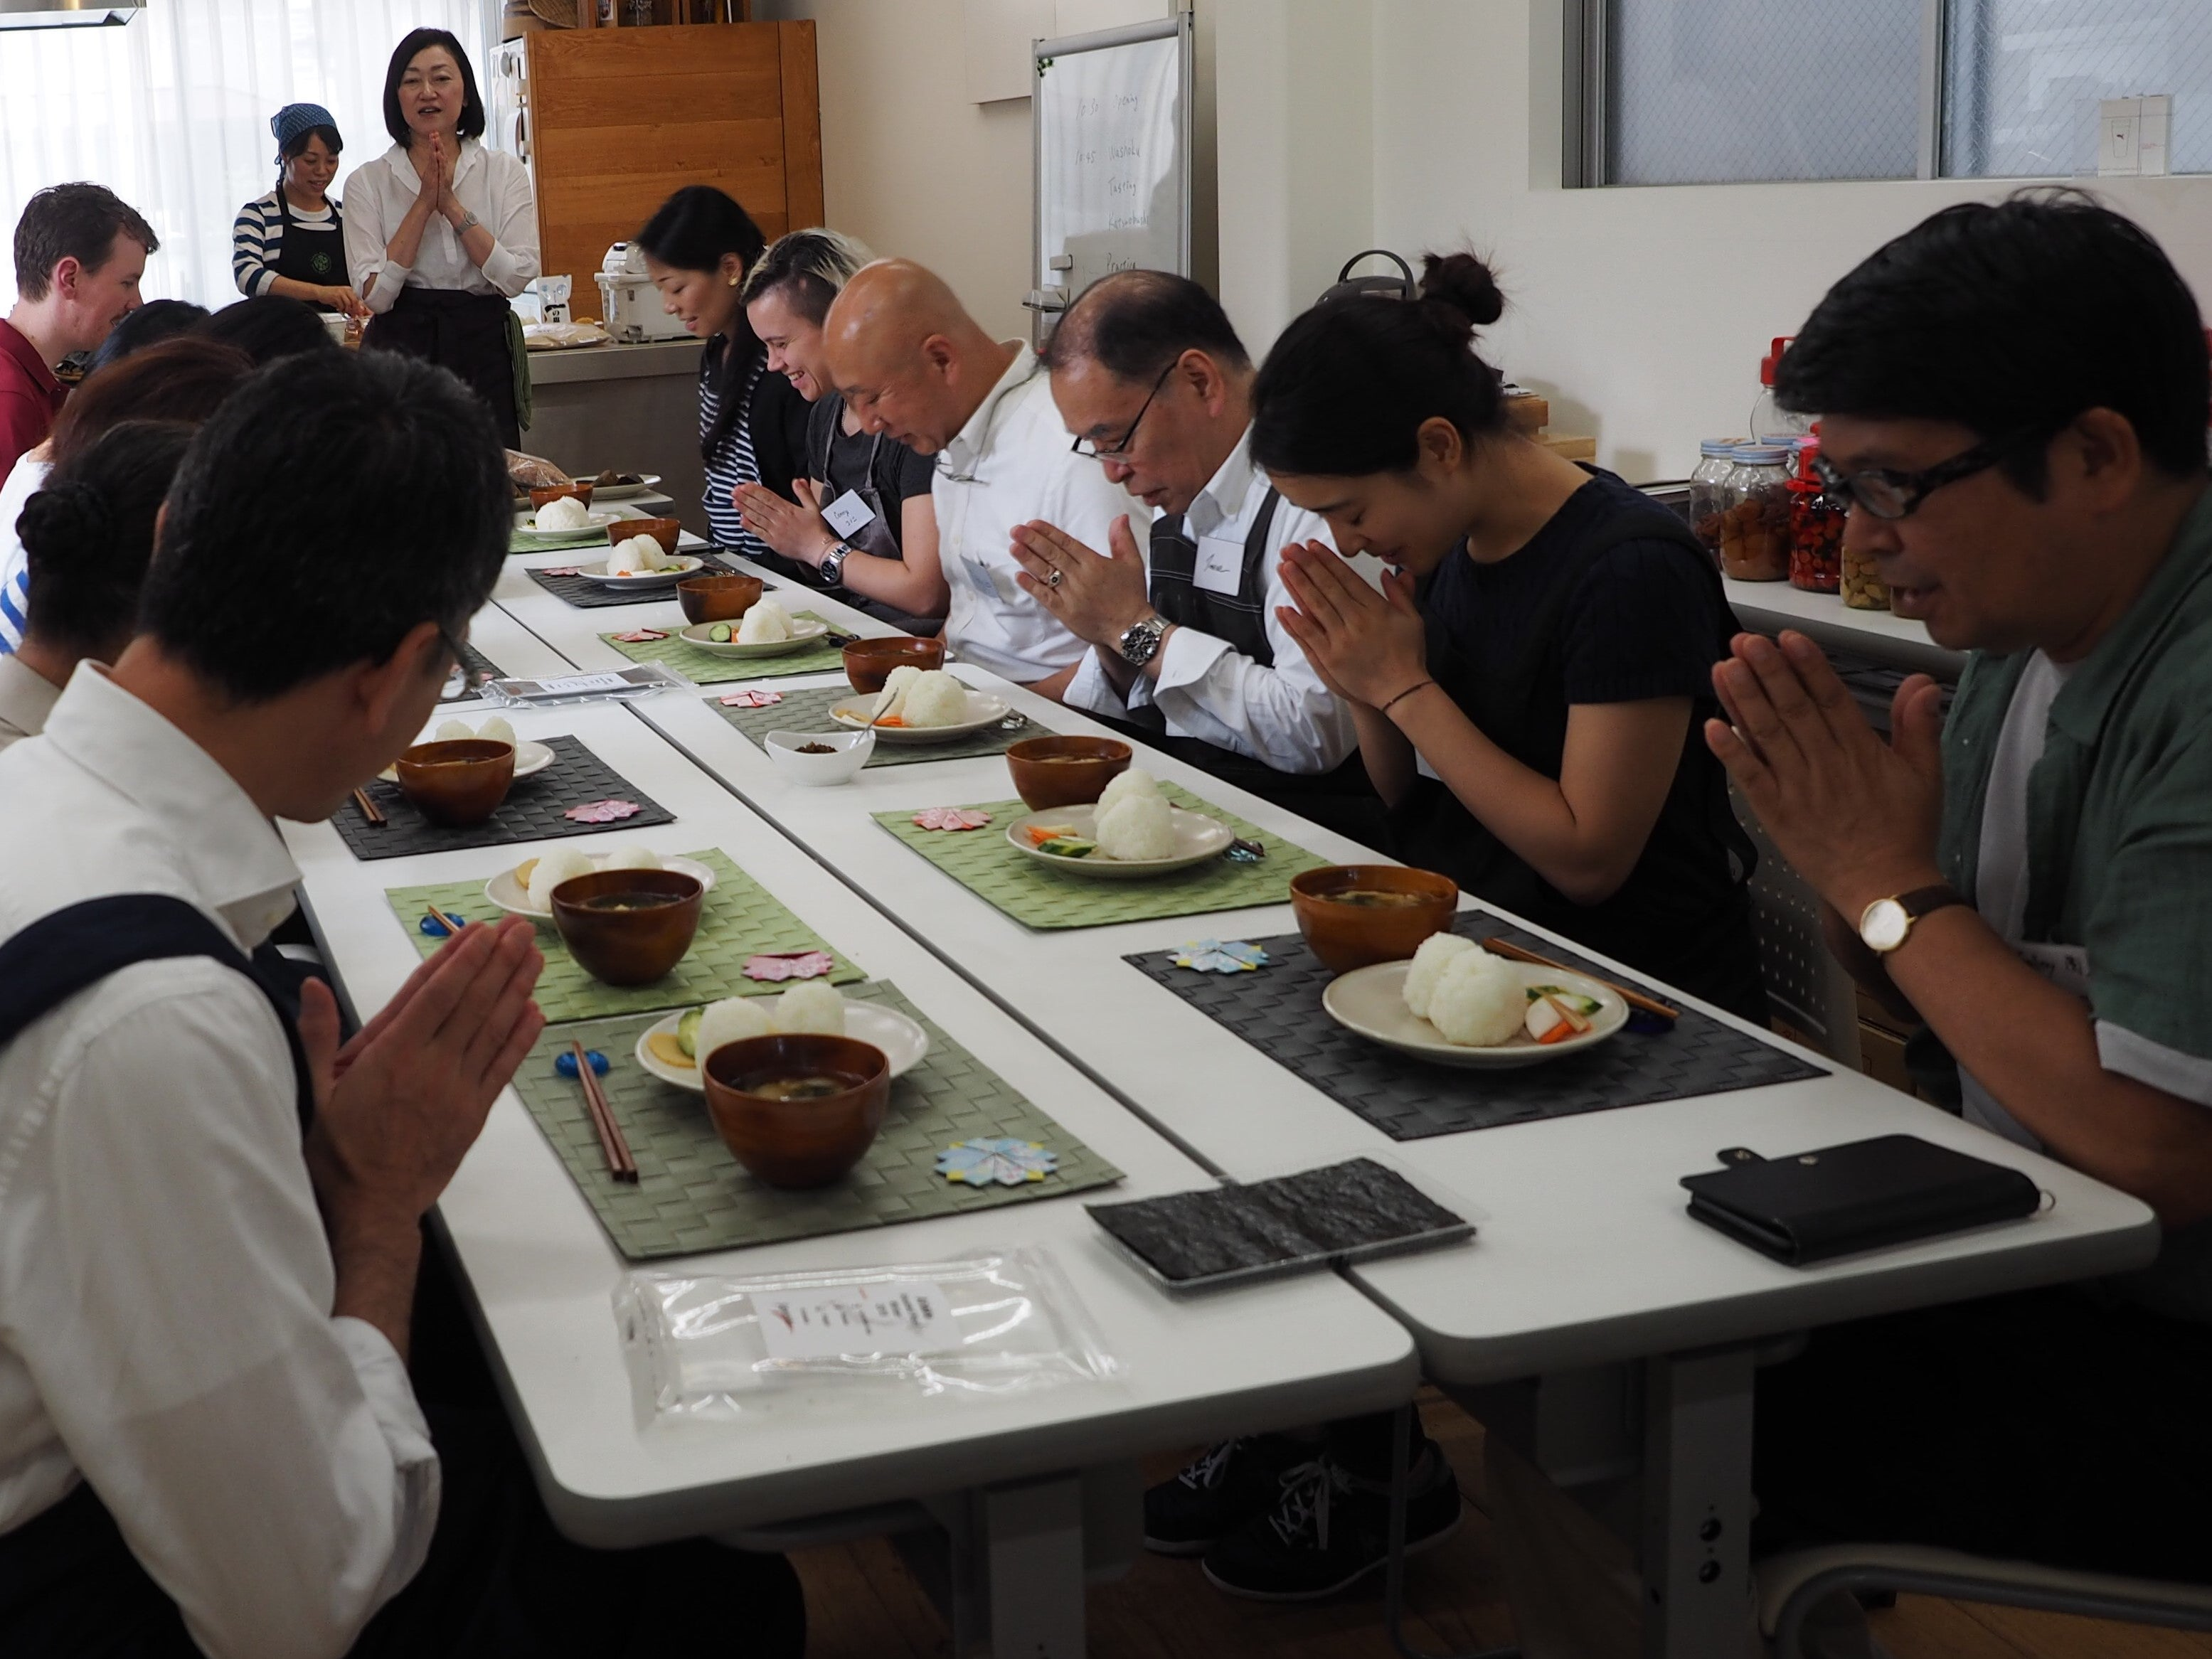 Let's learn the basics of WASHOKU【Dashi】16:30-19:30 on August 31, 2018